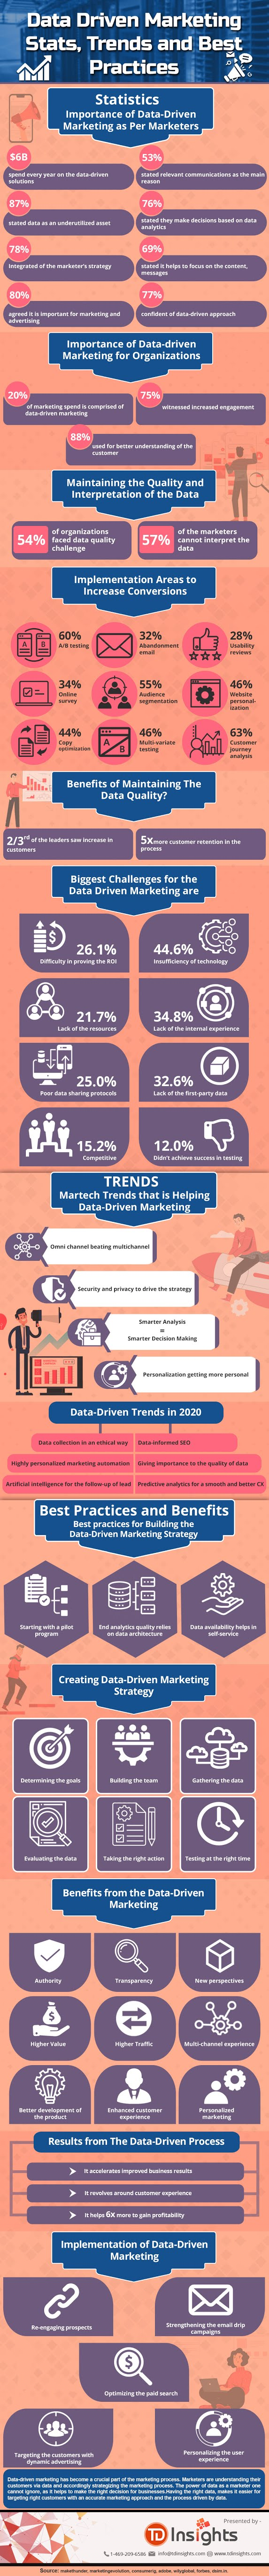 Data Driven Marketing – Statistics, Trends and Best Practices #infographic